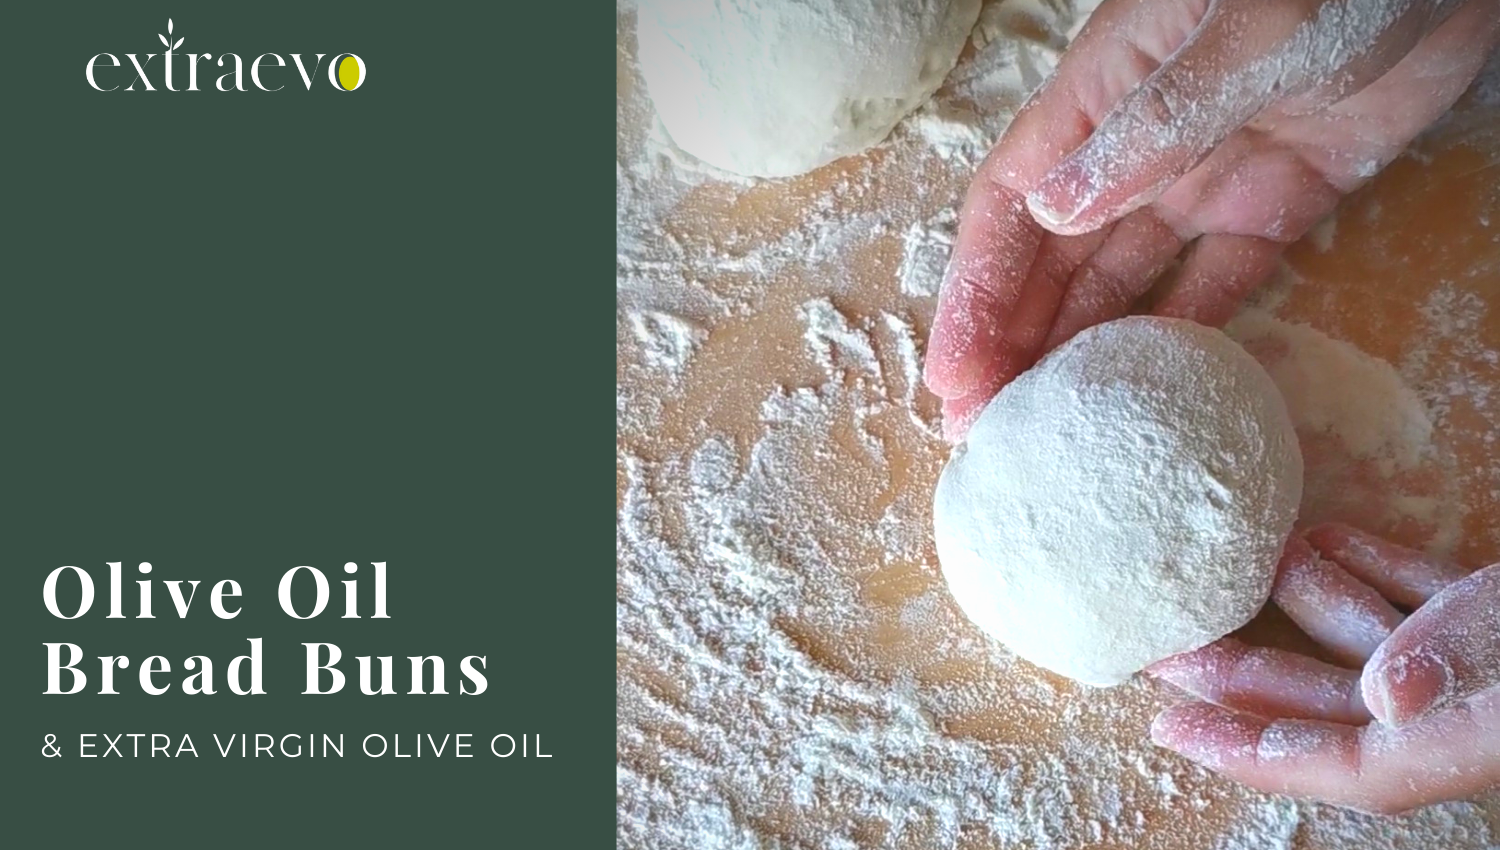 Olive Oil Bread Buns